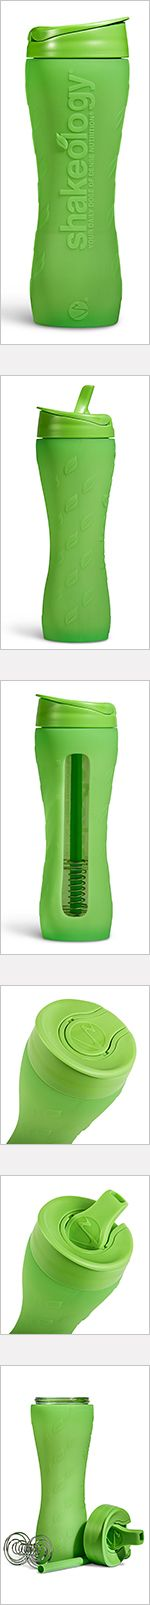 Glass Shakeology Shaker Cup!!!